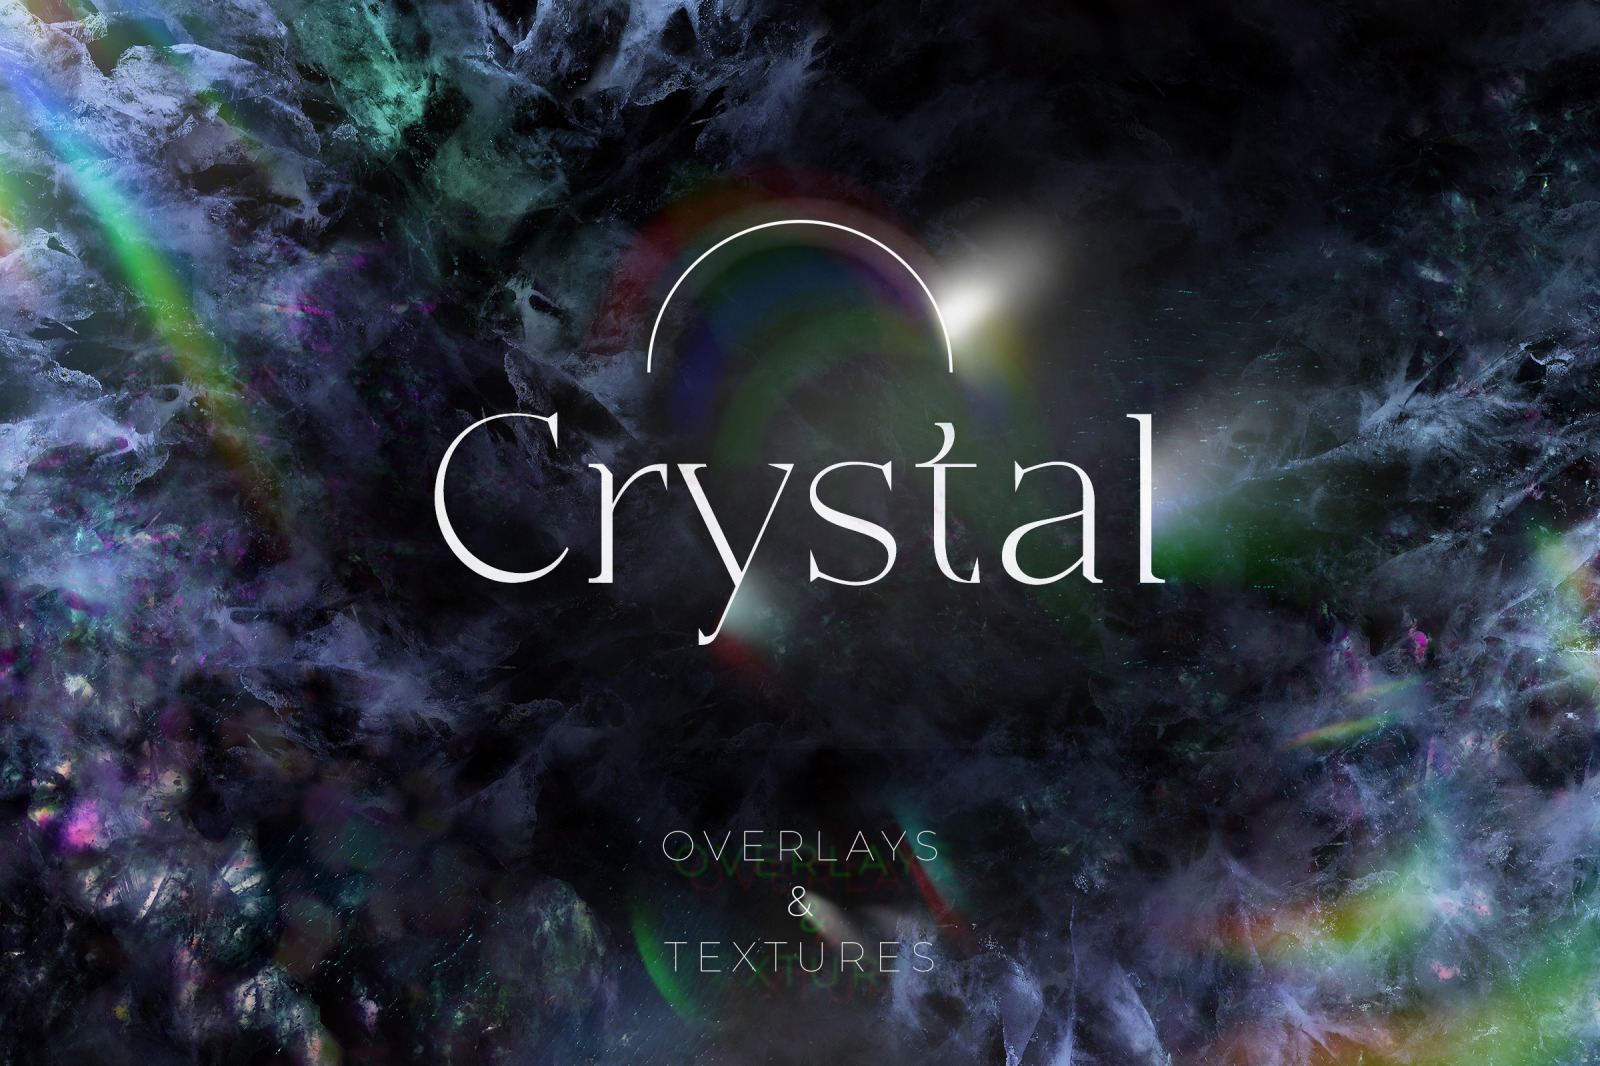 Crystal Overlays and Textures